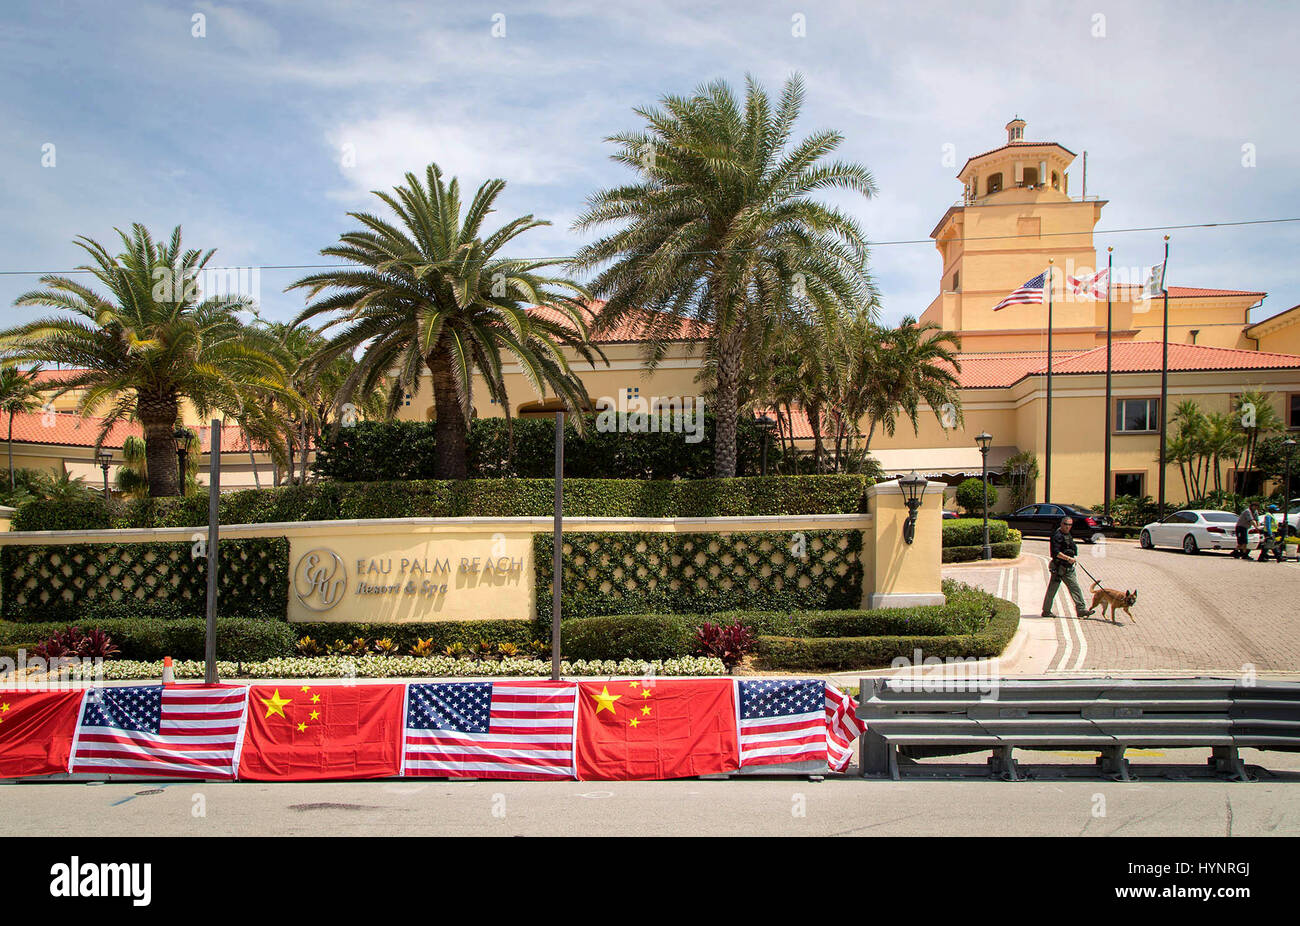 Manalapan, Florida, USA. 5th Apr, 2017. Security at Eau Palm Beach Resort & Spa is ramping up for the arrival - Stock Image